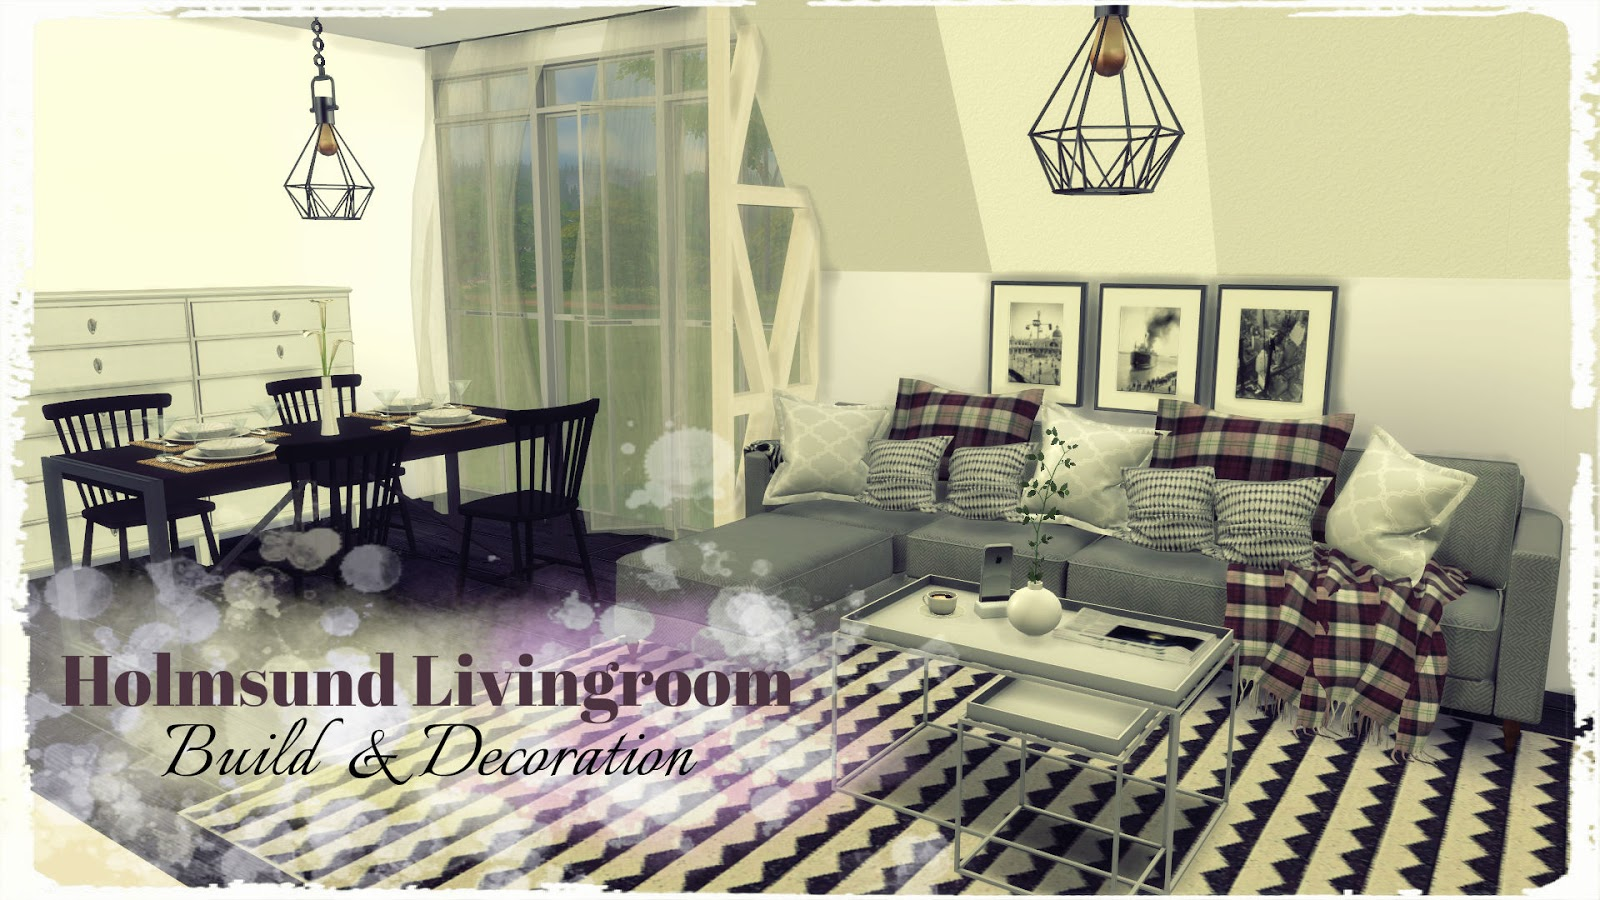 Sims 4 Holmsund Livingroom Build Decoration Dinha